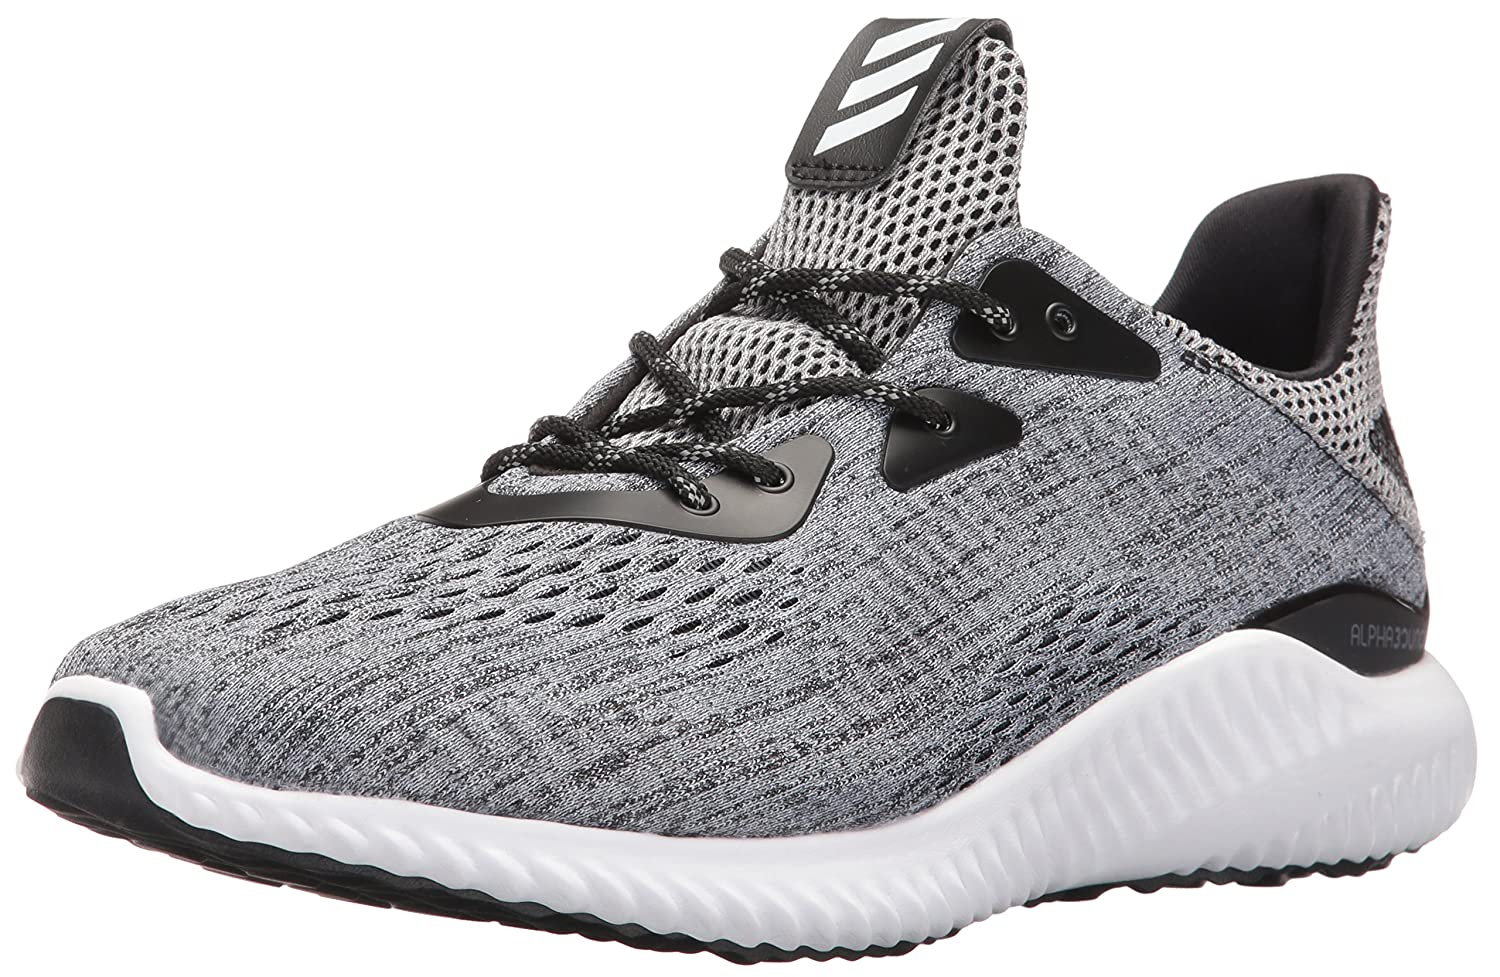 46e3a756a Adidas Mens Alphabounce Em M Running Shoes Black White Black Pick A Best  75L069